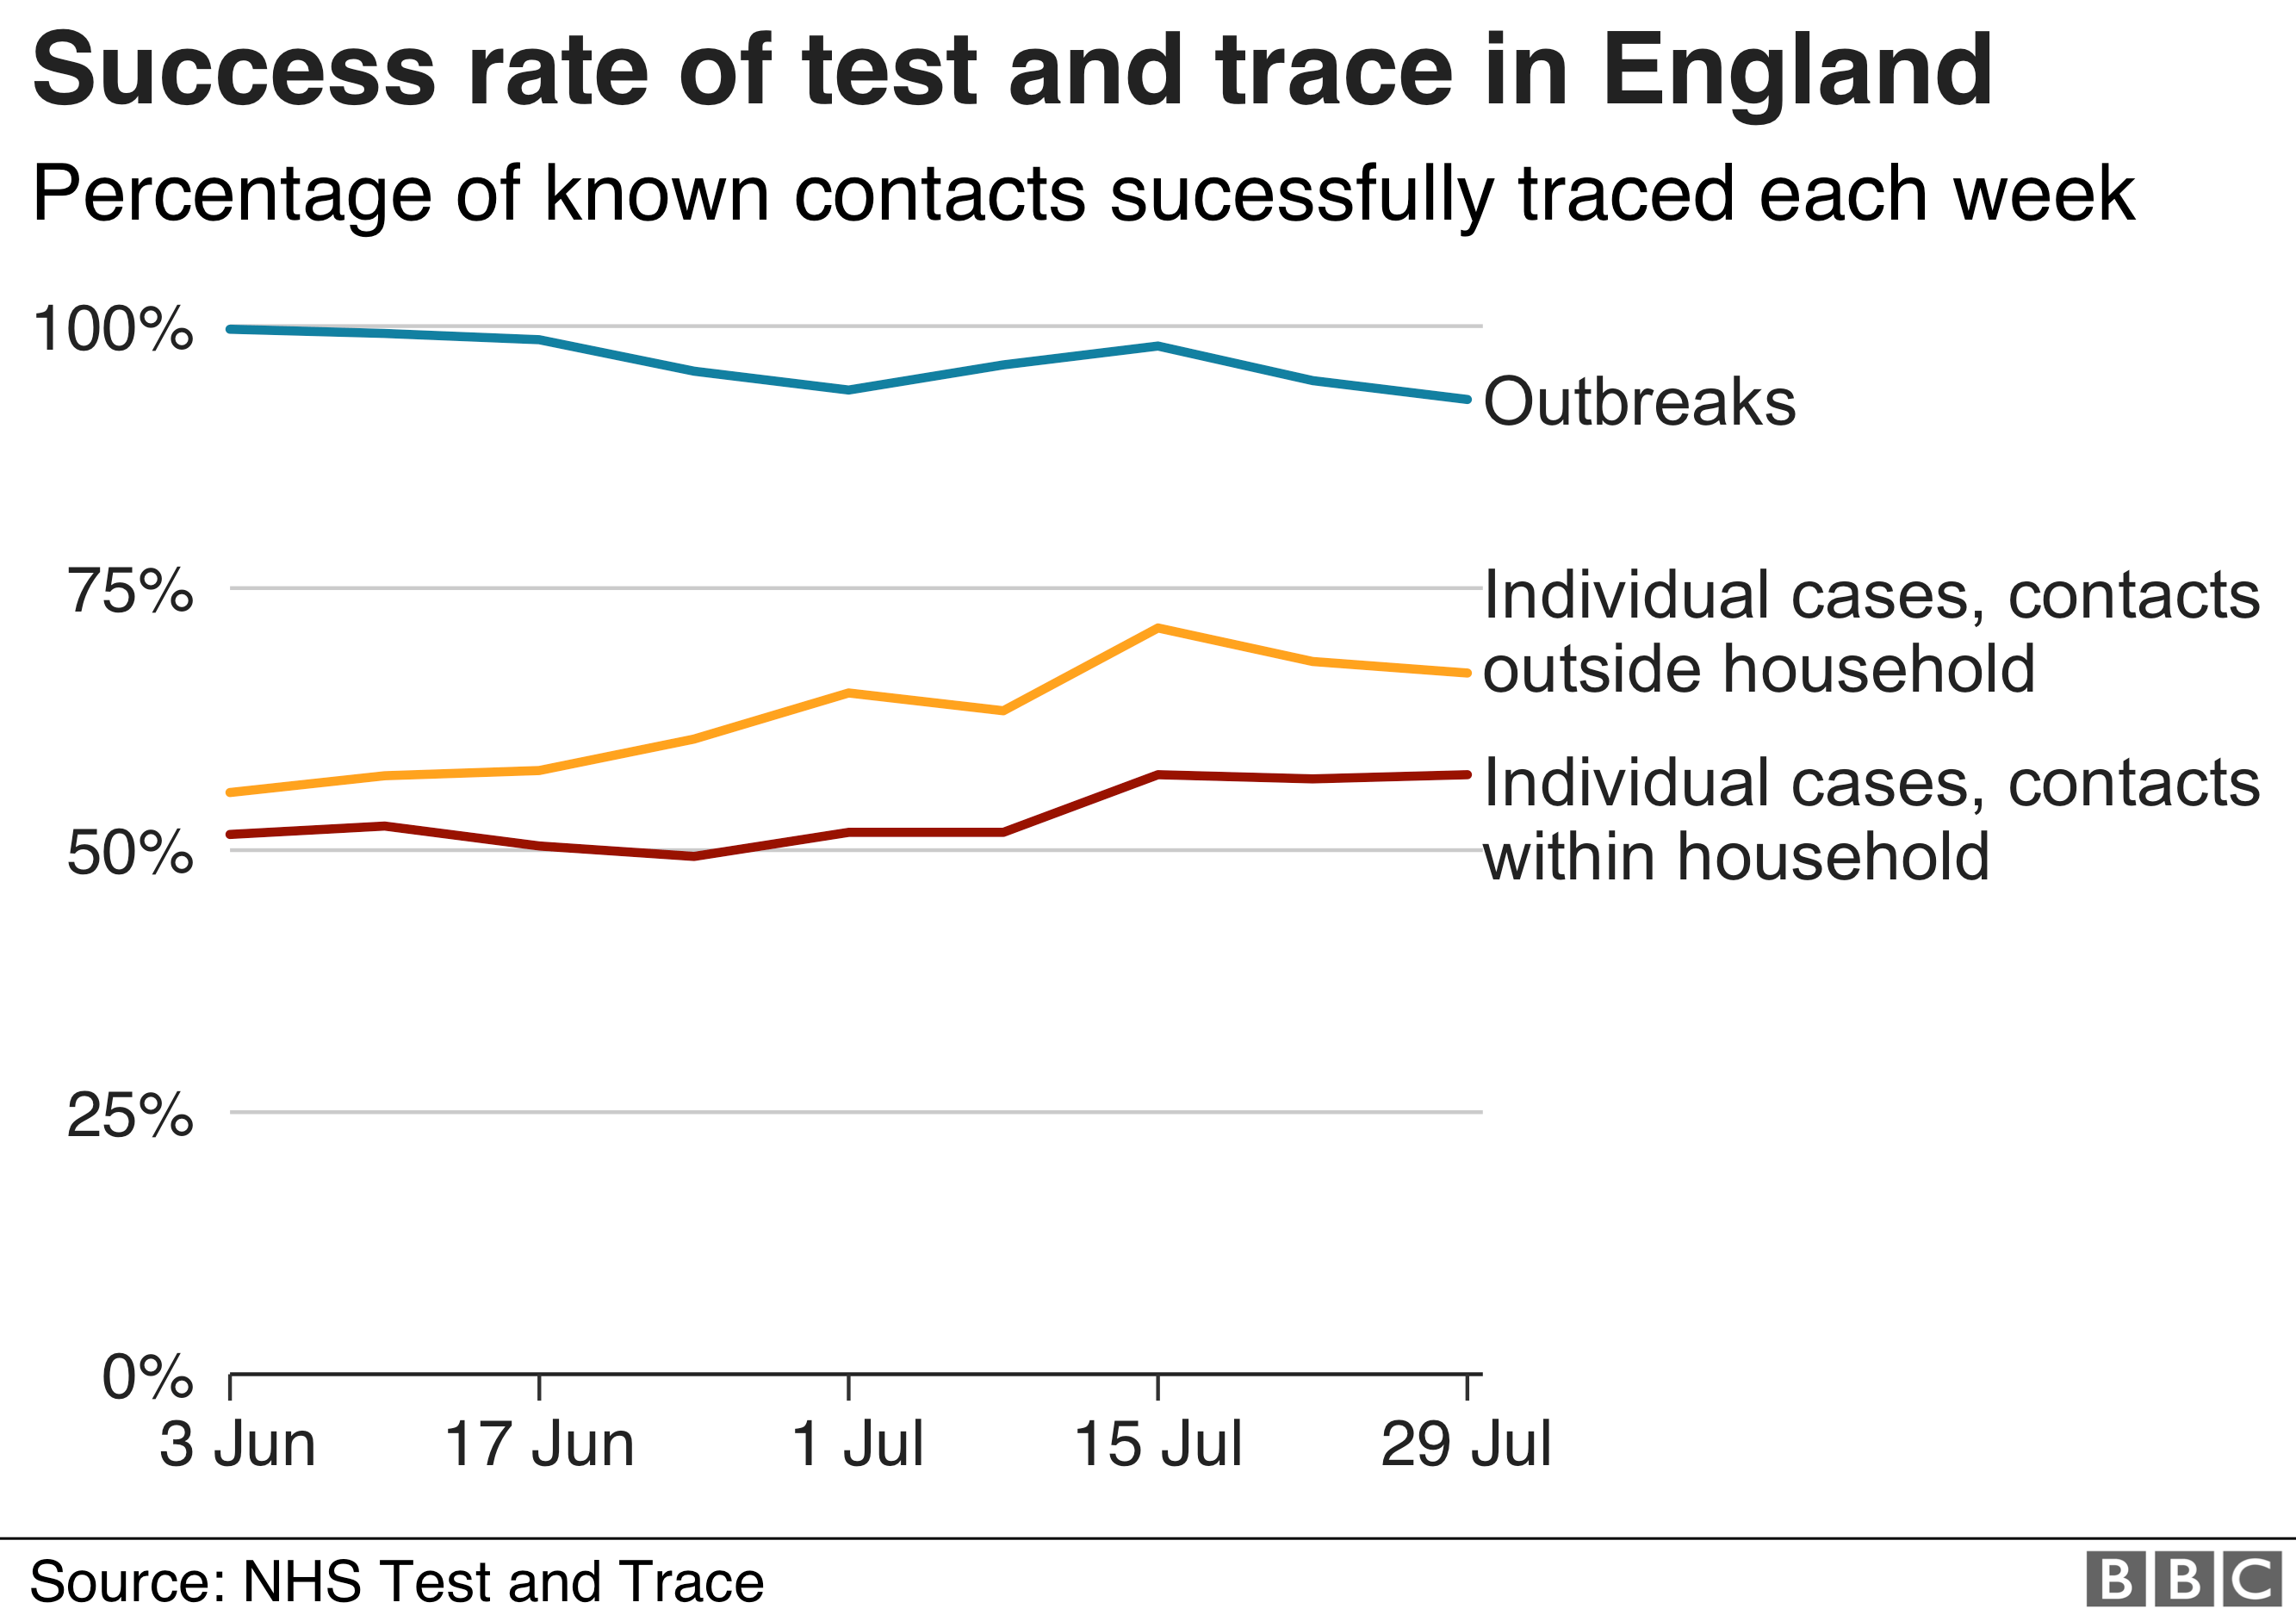 Success rate of test and trace in England